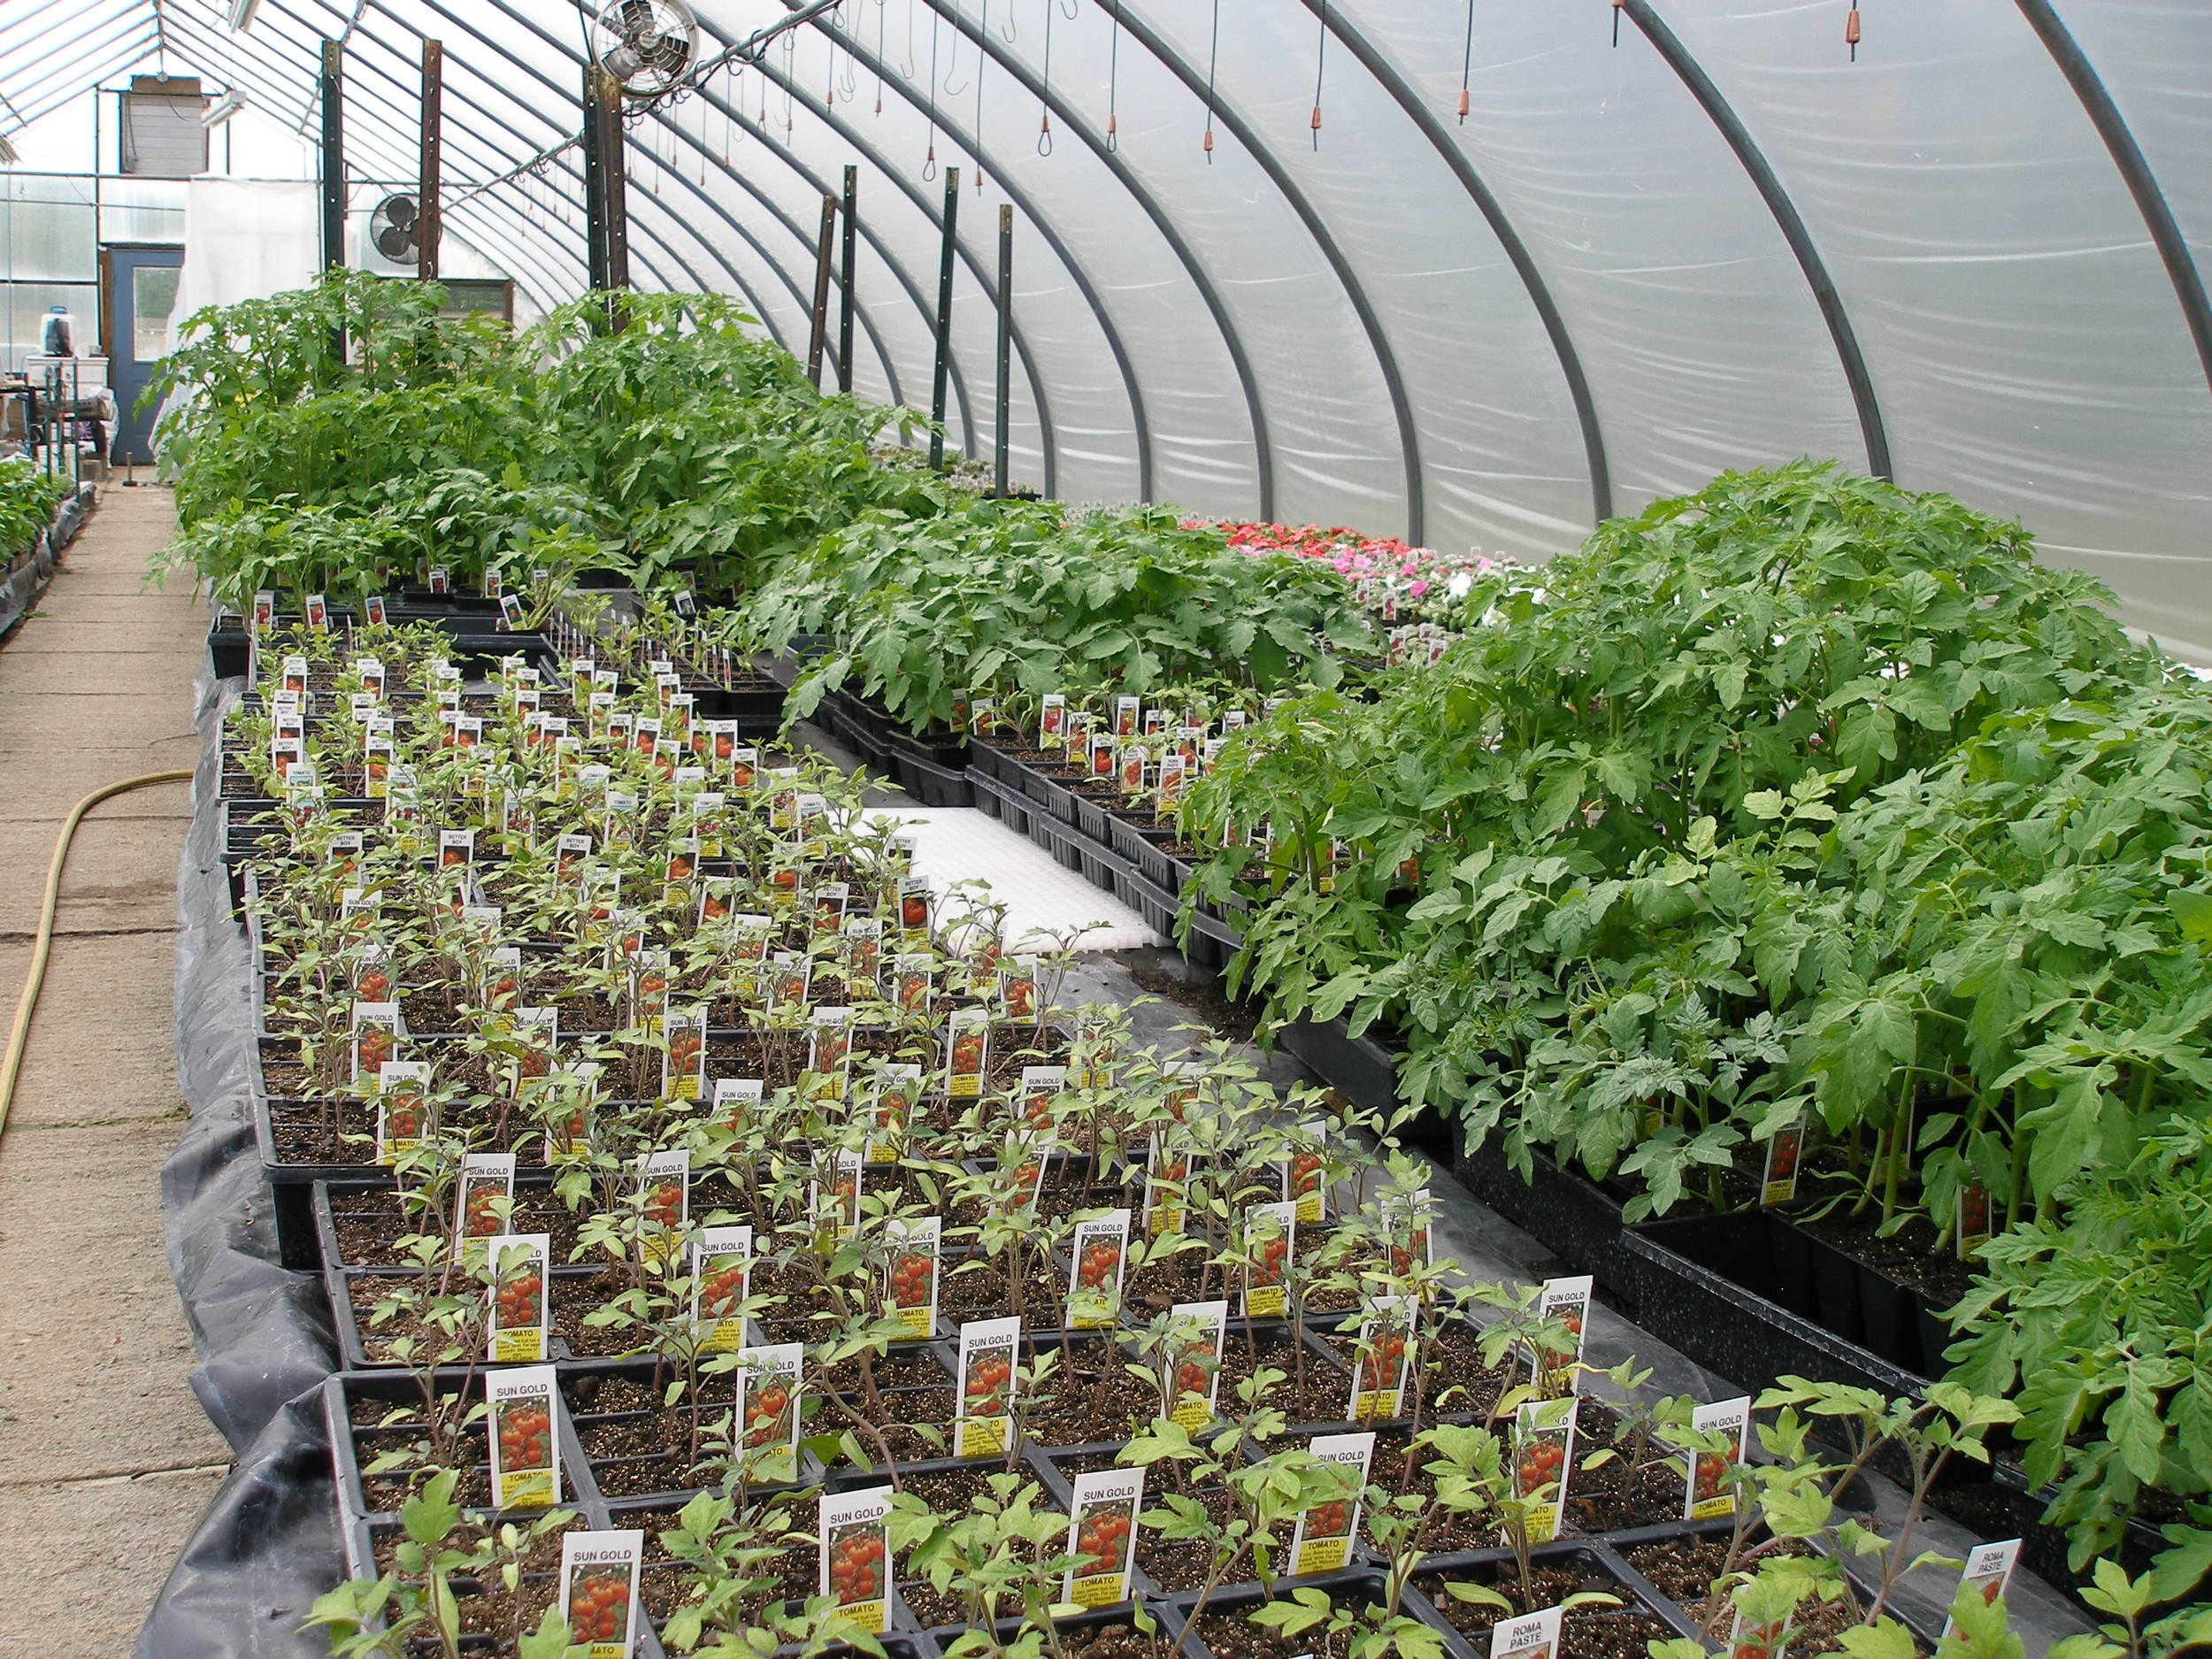 Staggered plantings of tomatoes.